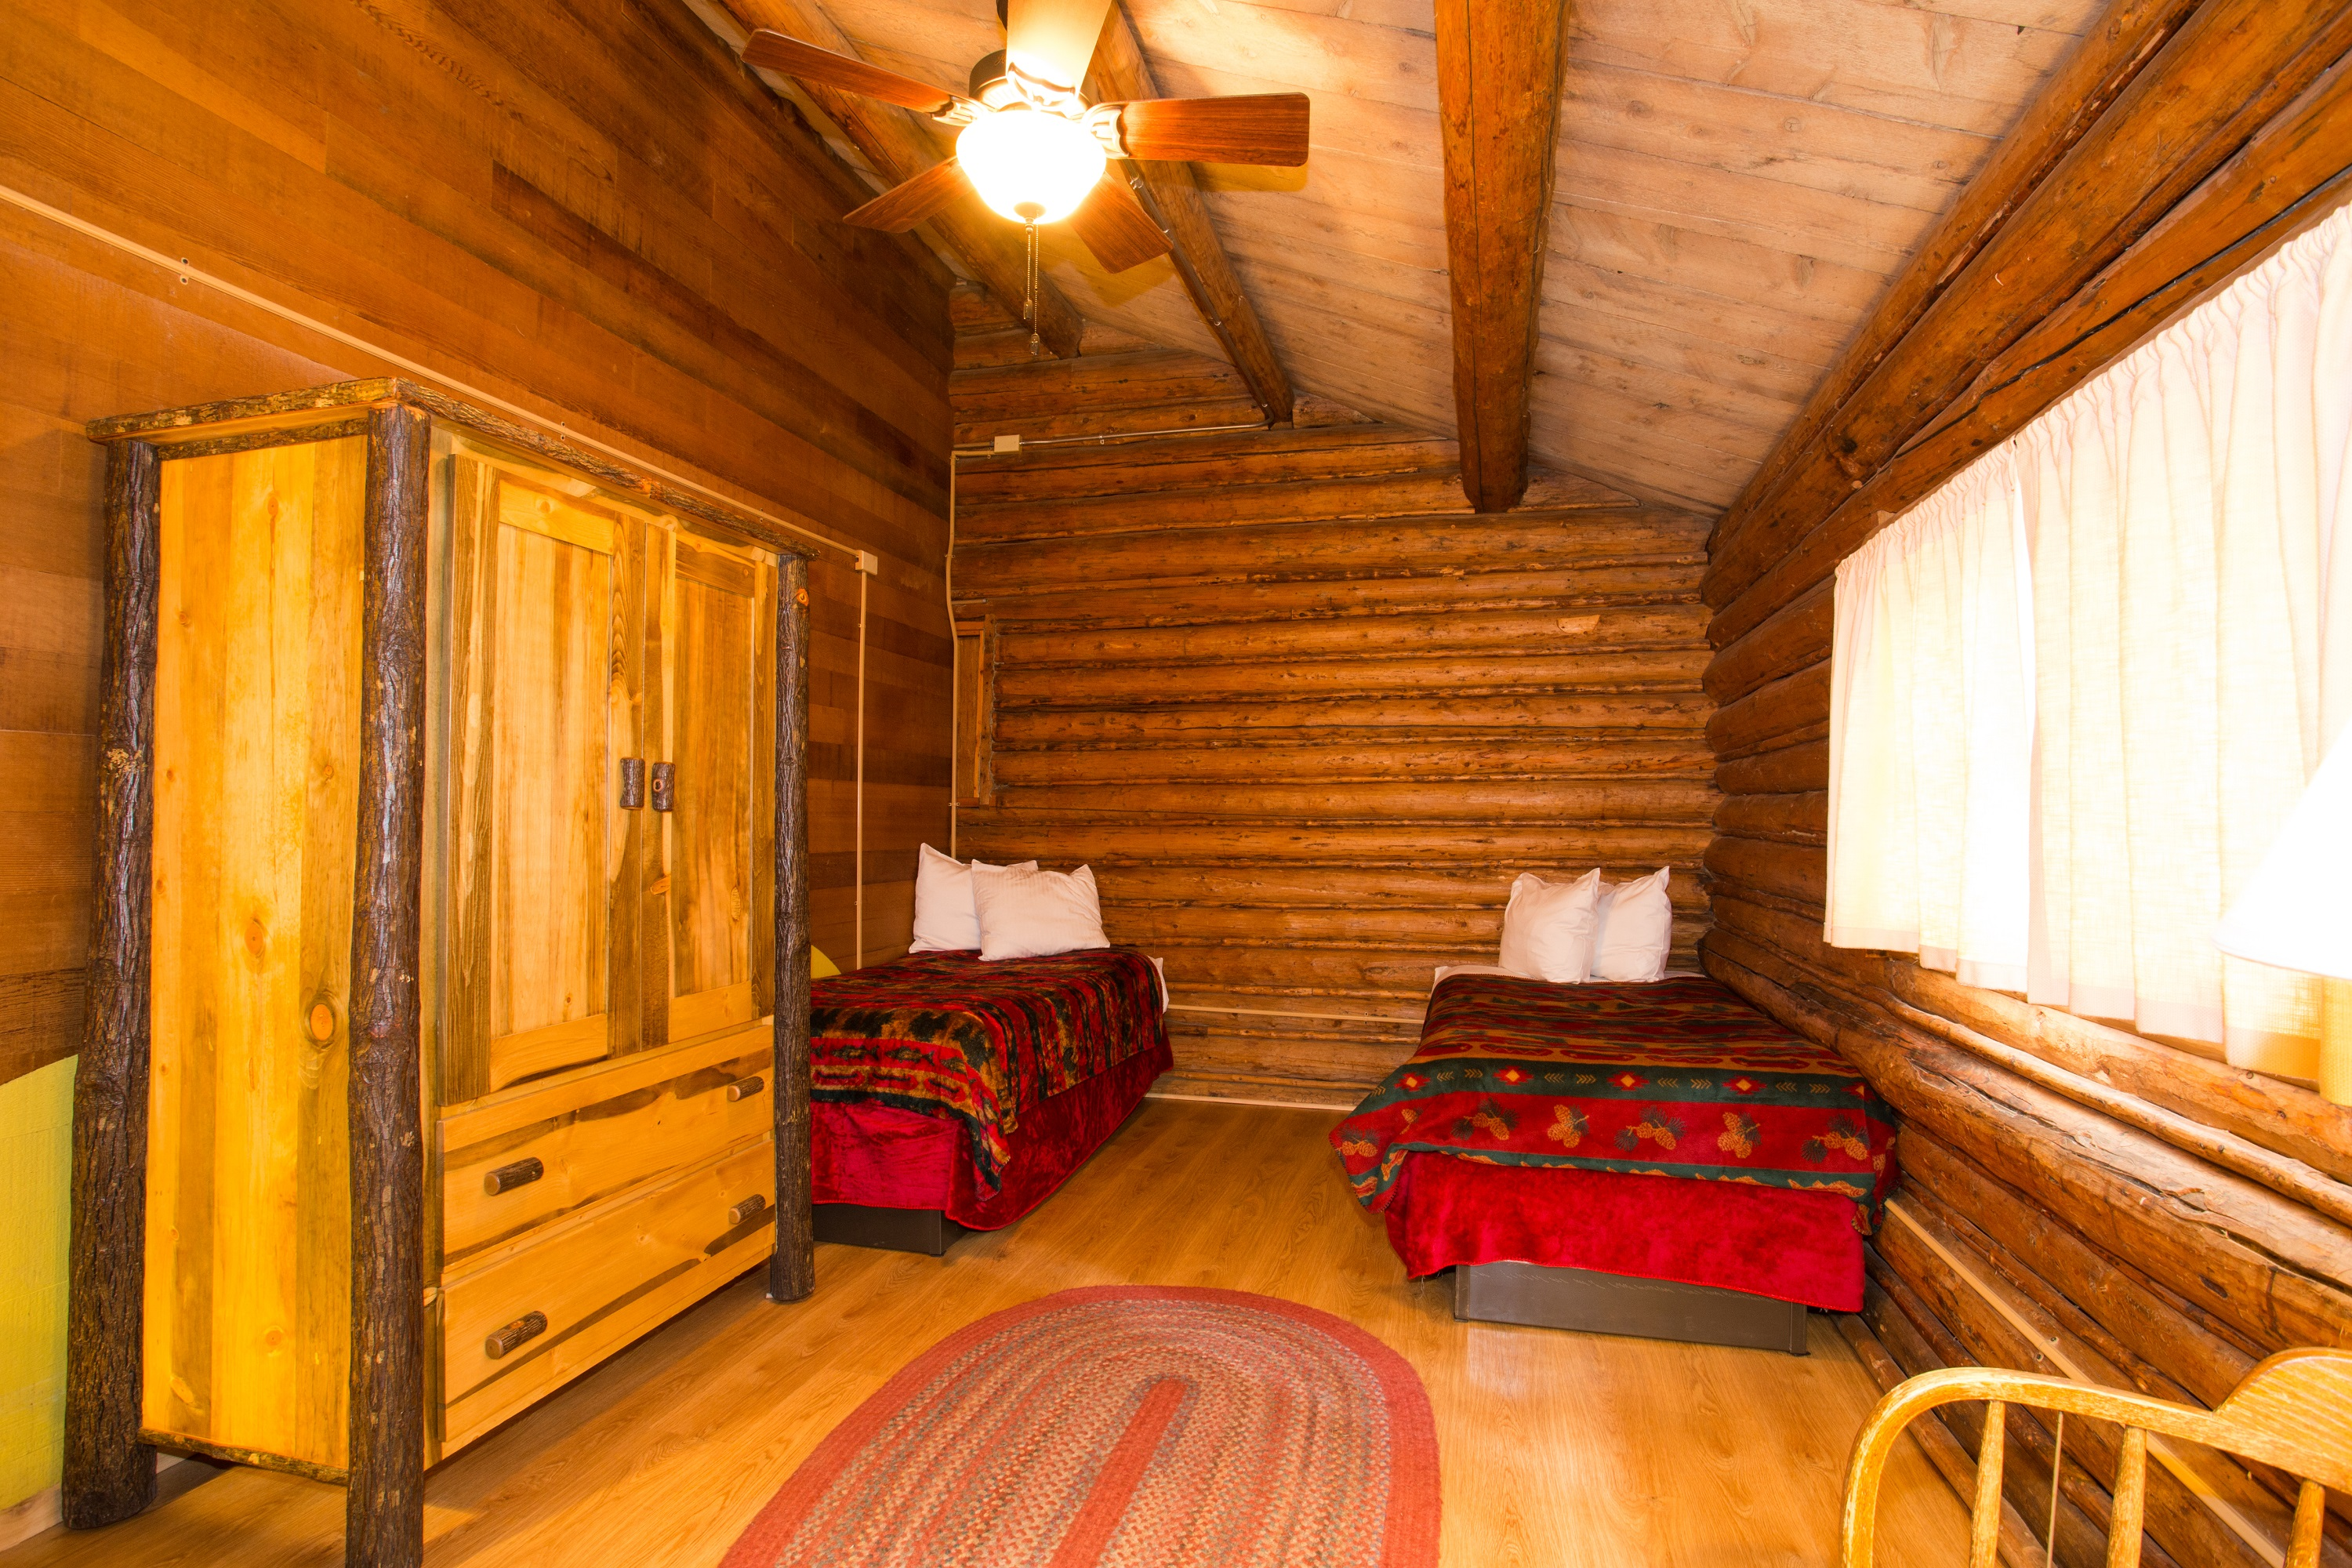 One Room Cabin - Two Twin Beds Shared Bathroom u0026 Two Twin Beds Sleeps 1-2 $ & Colter Bay Village